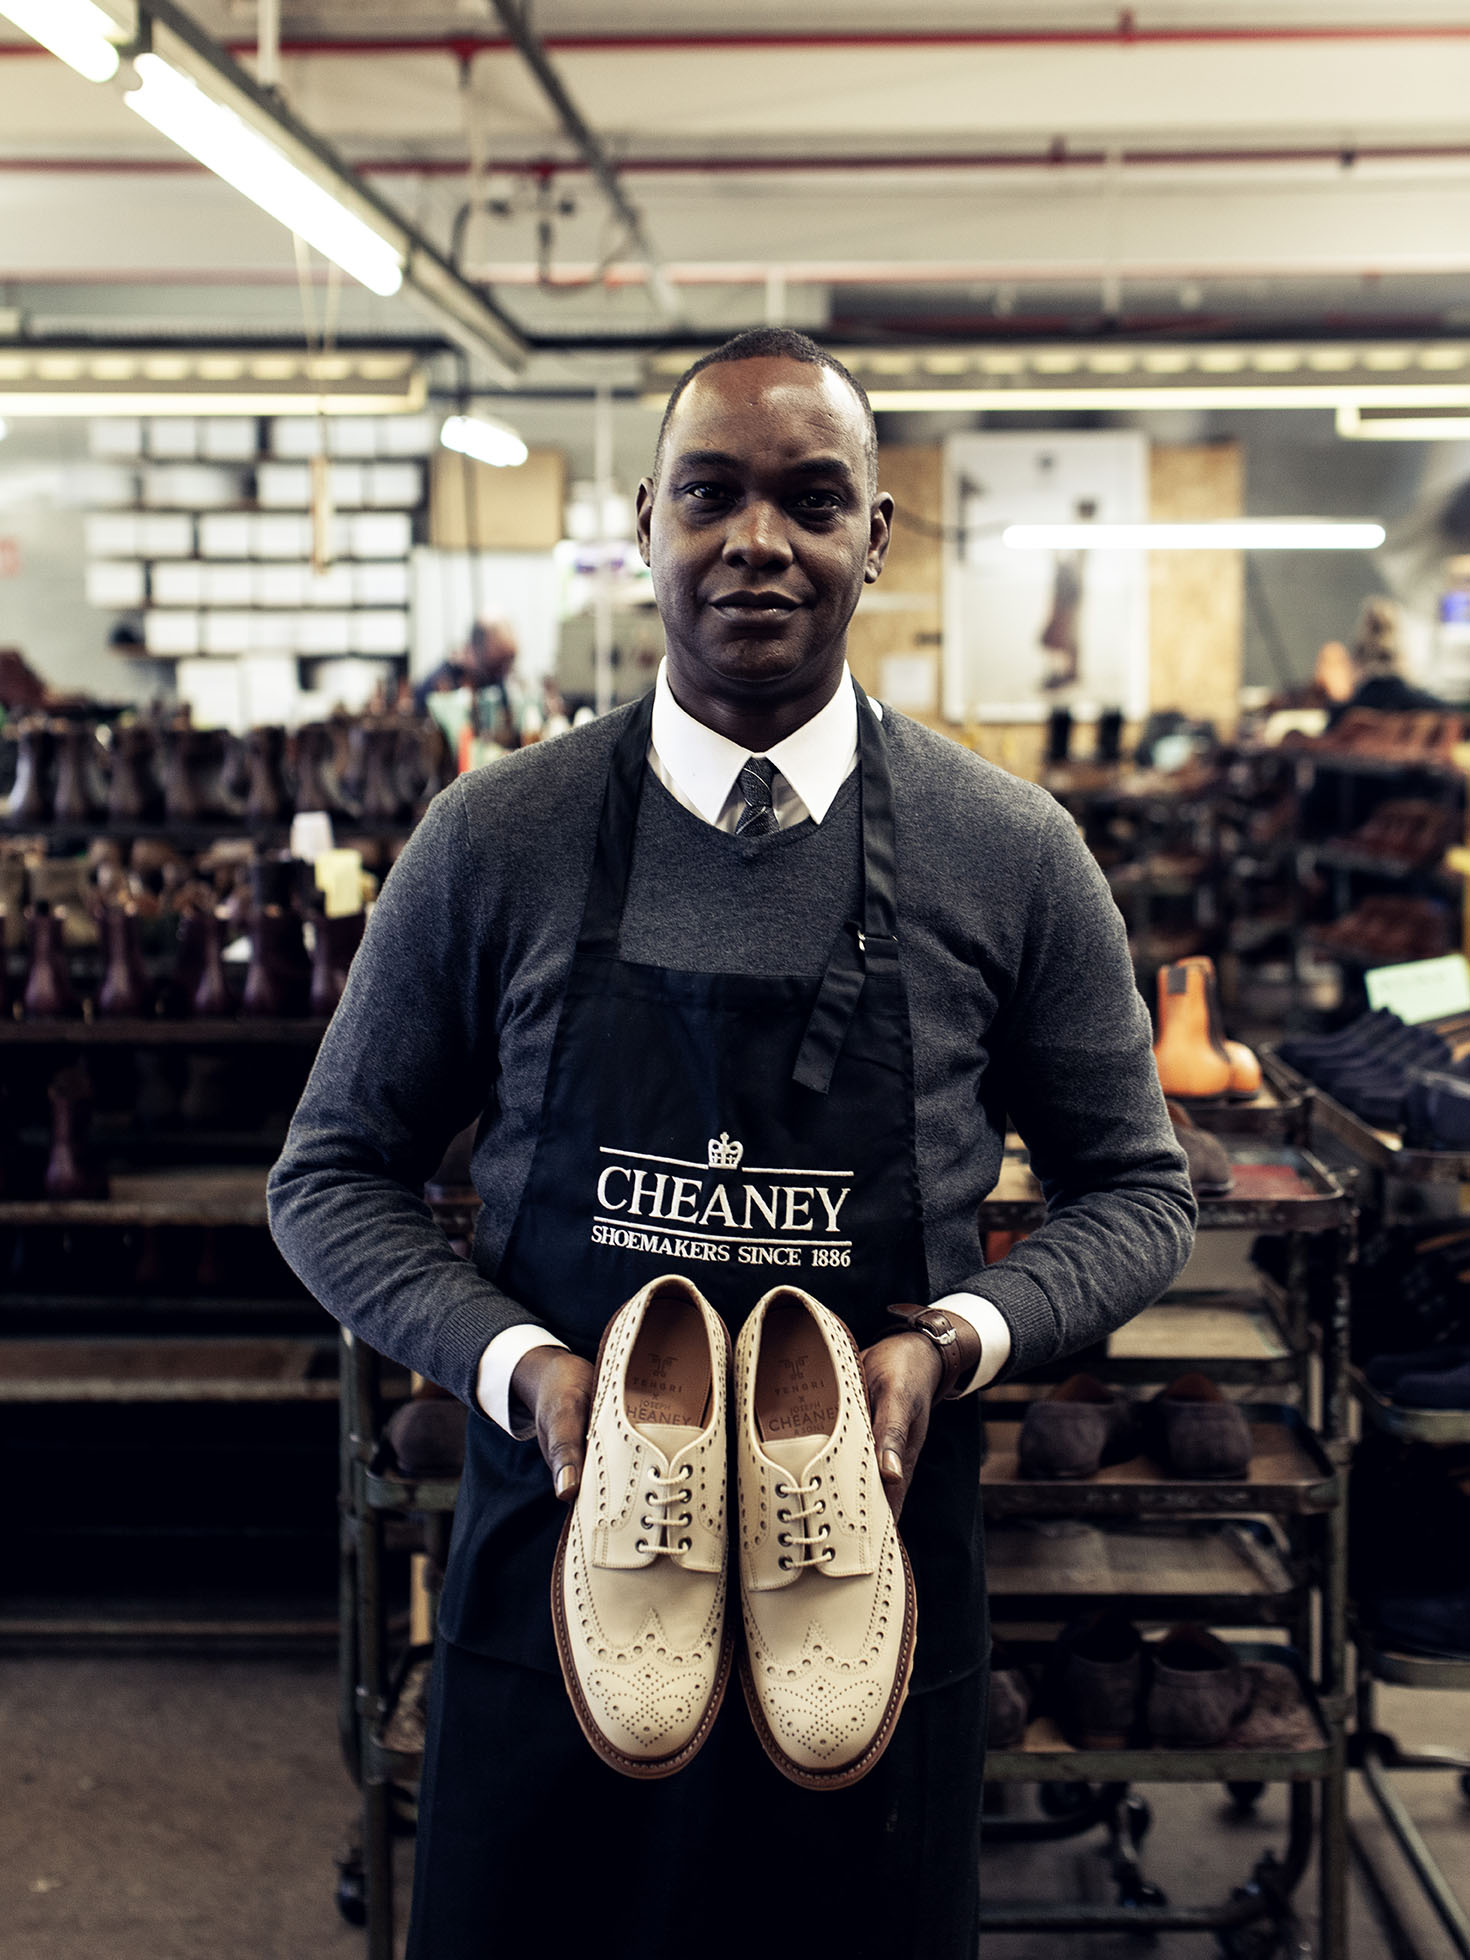 Shoemaker holding a pair of Apex Brogue shoes